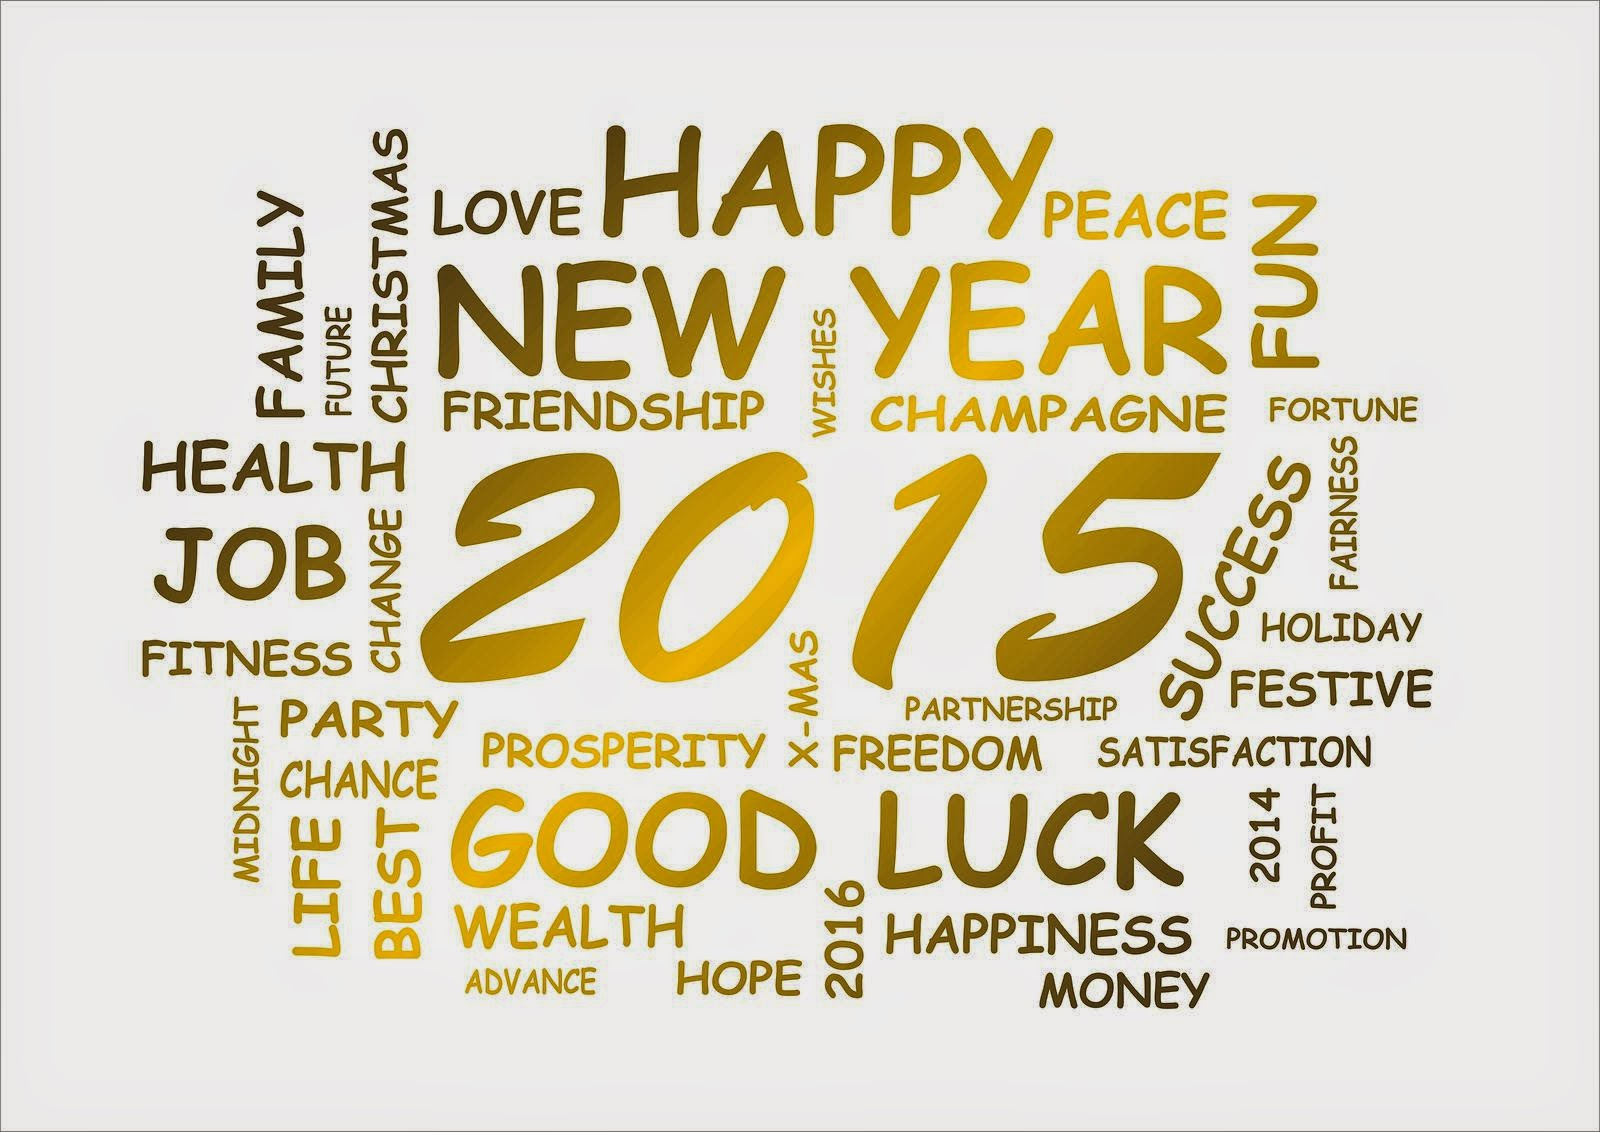 What In The World A Wonderful And Meaningful New Year